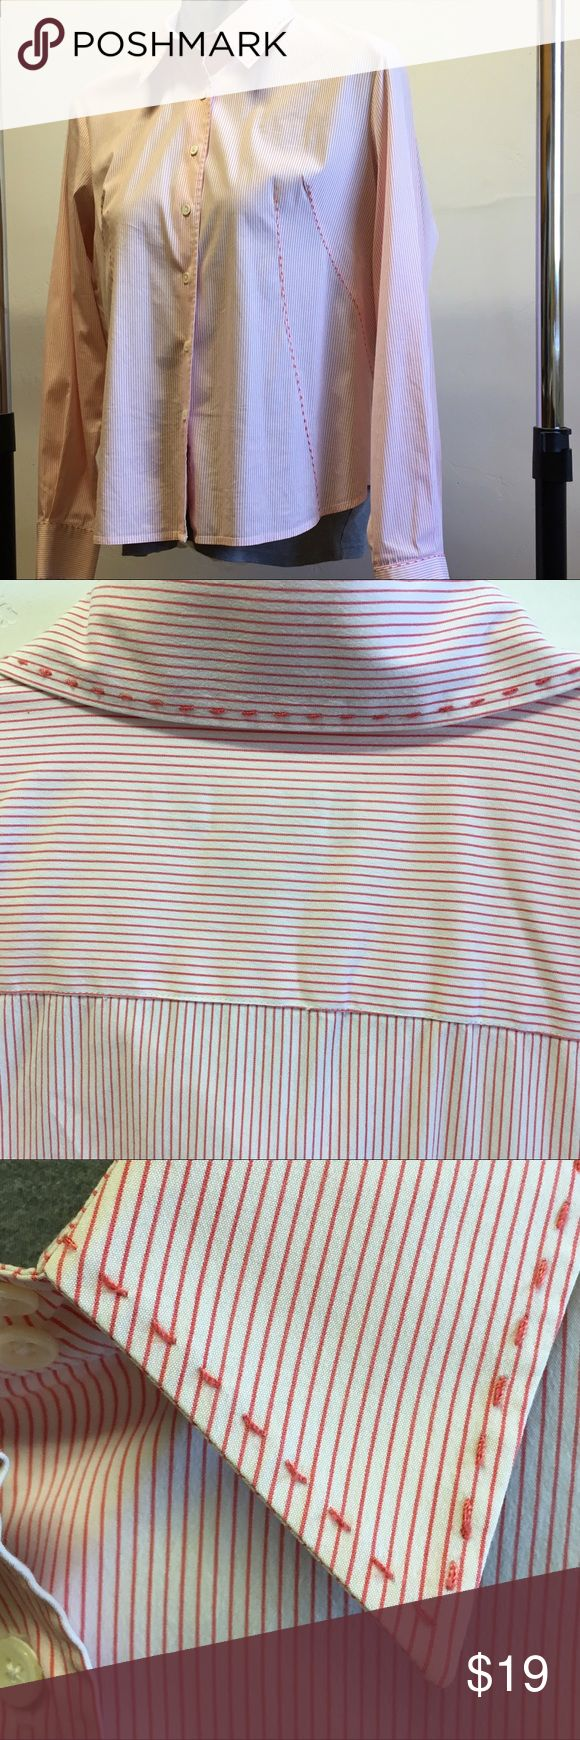 Faconnable button down shirt, ladies blouse Sz XL Bright red stripes and great stitching details at collar, cuffs and body. This blouse is perfect with a skirt and jacket for the office or with jeans. Wrinkle resistant cotton blend is great for summer. Preowned and in excellent condition. No tears, stains or fading.  Size XL Faconnable Tops Button Down Shirts